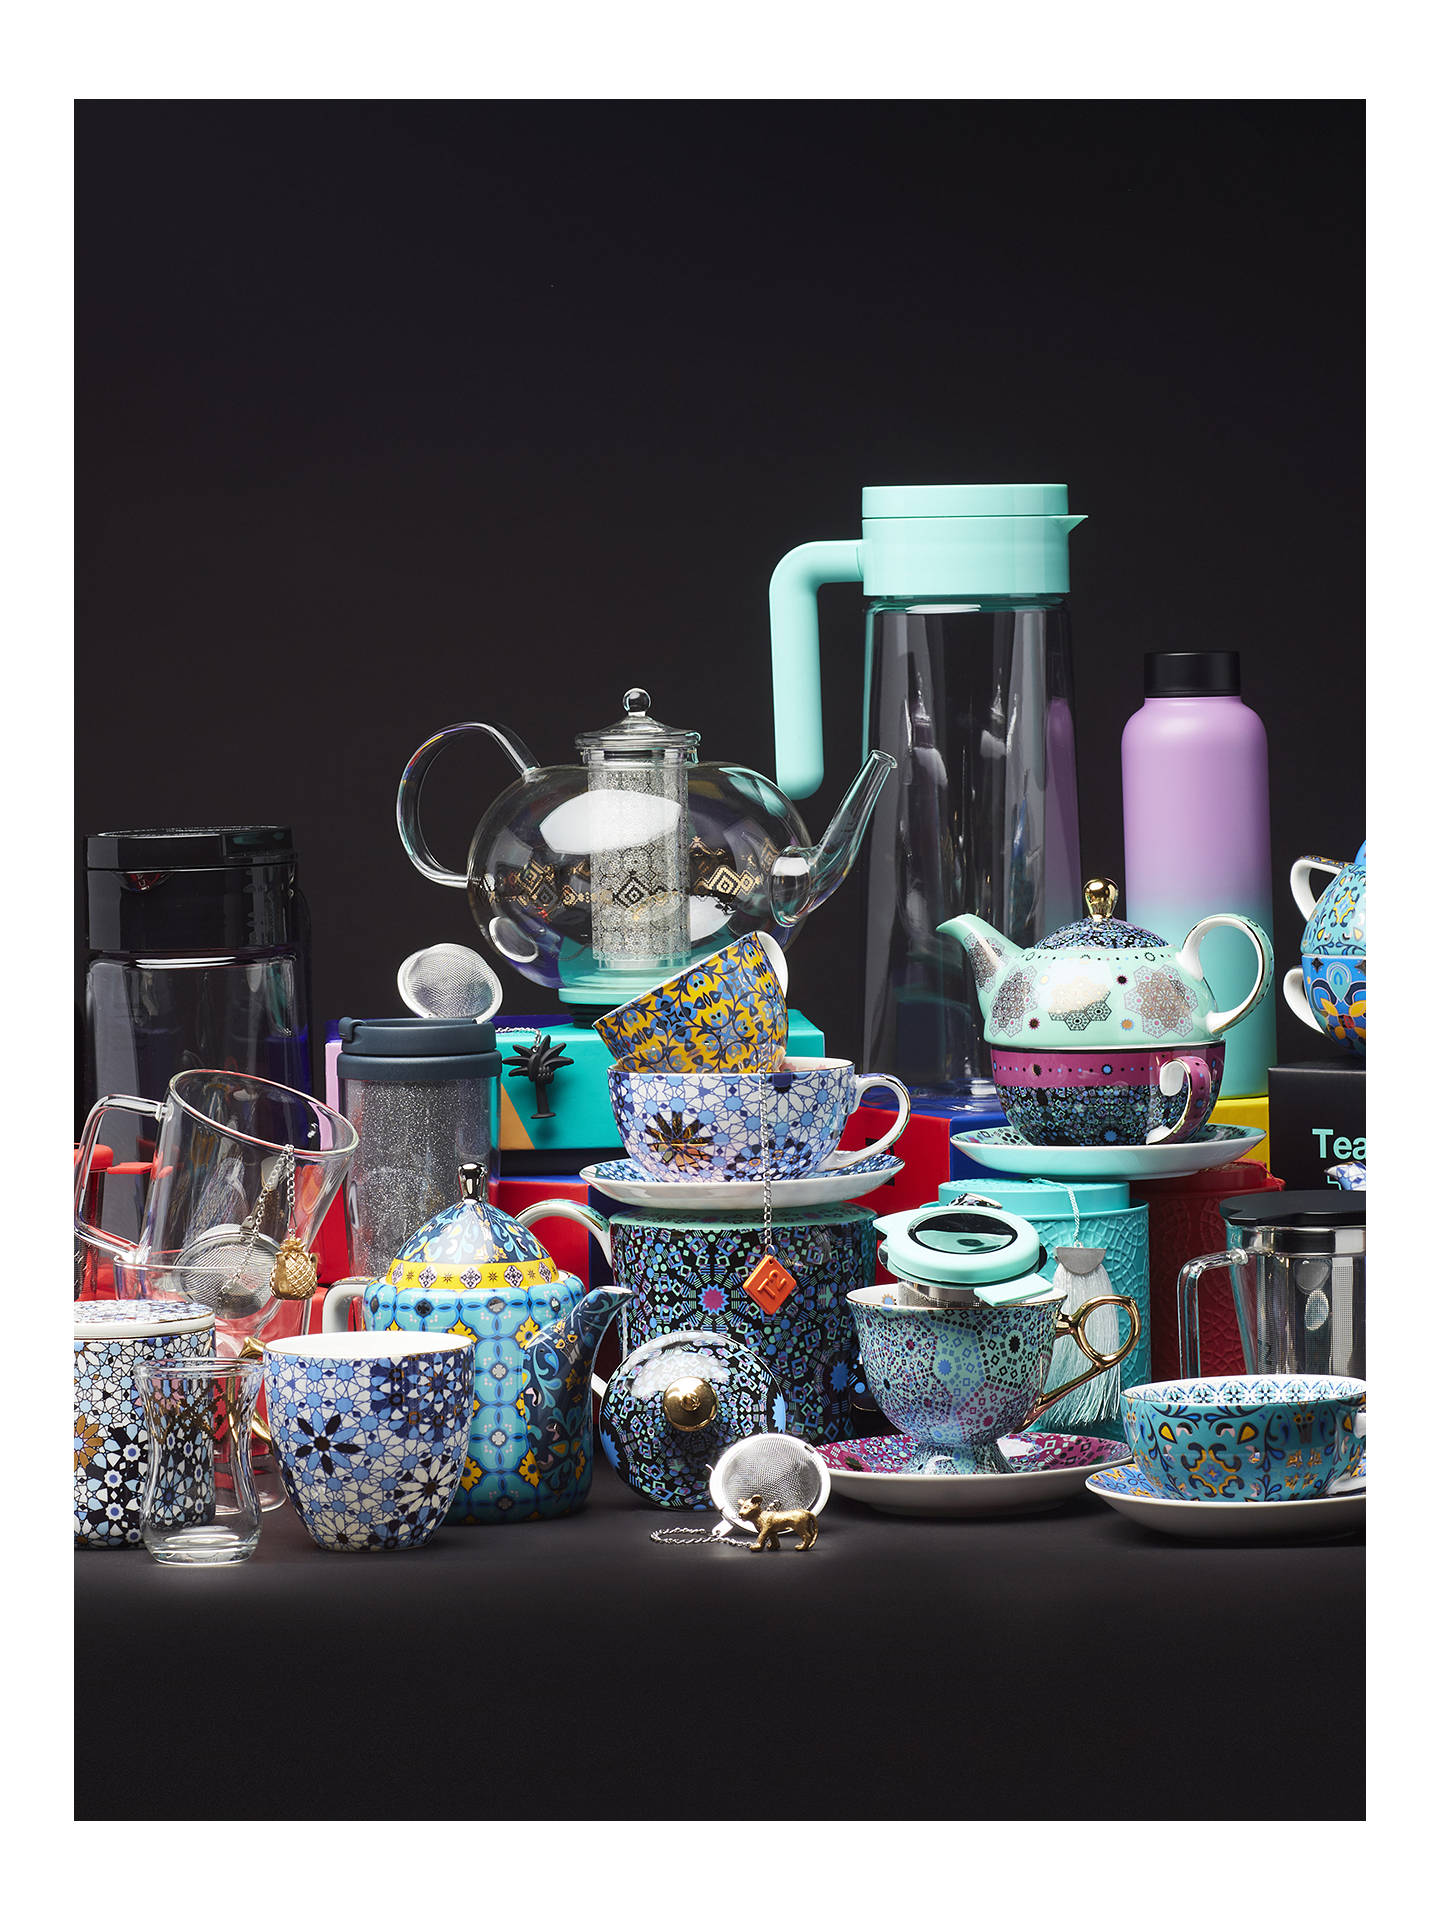 Buy T2 Glass Tea Mug With Infuser, Black/Clear, 400ml Online at johnlewis.com